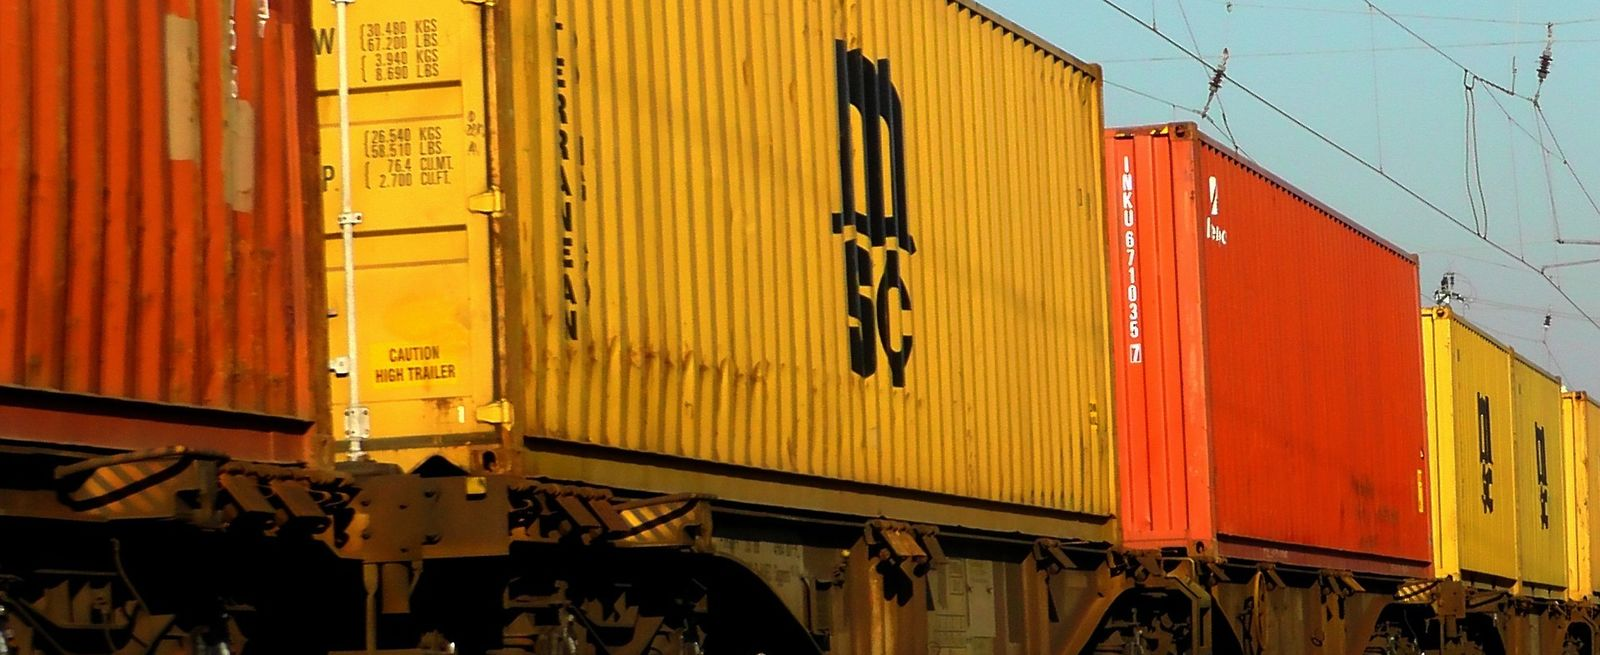 MSC containers on freight train